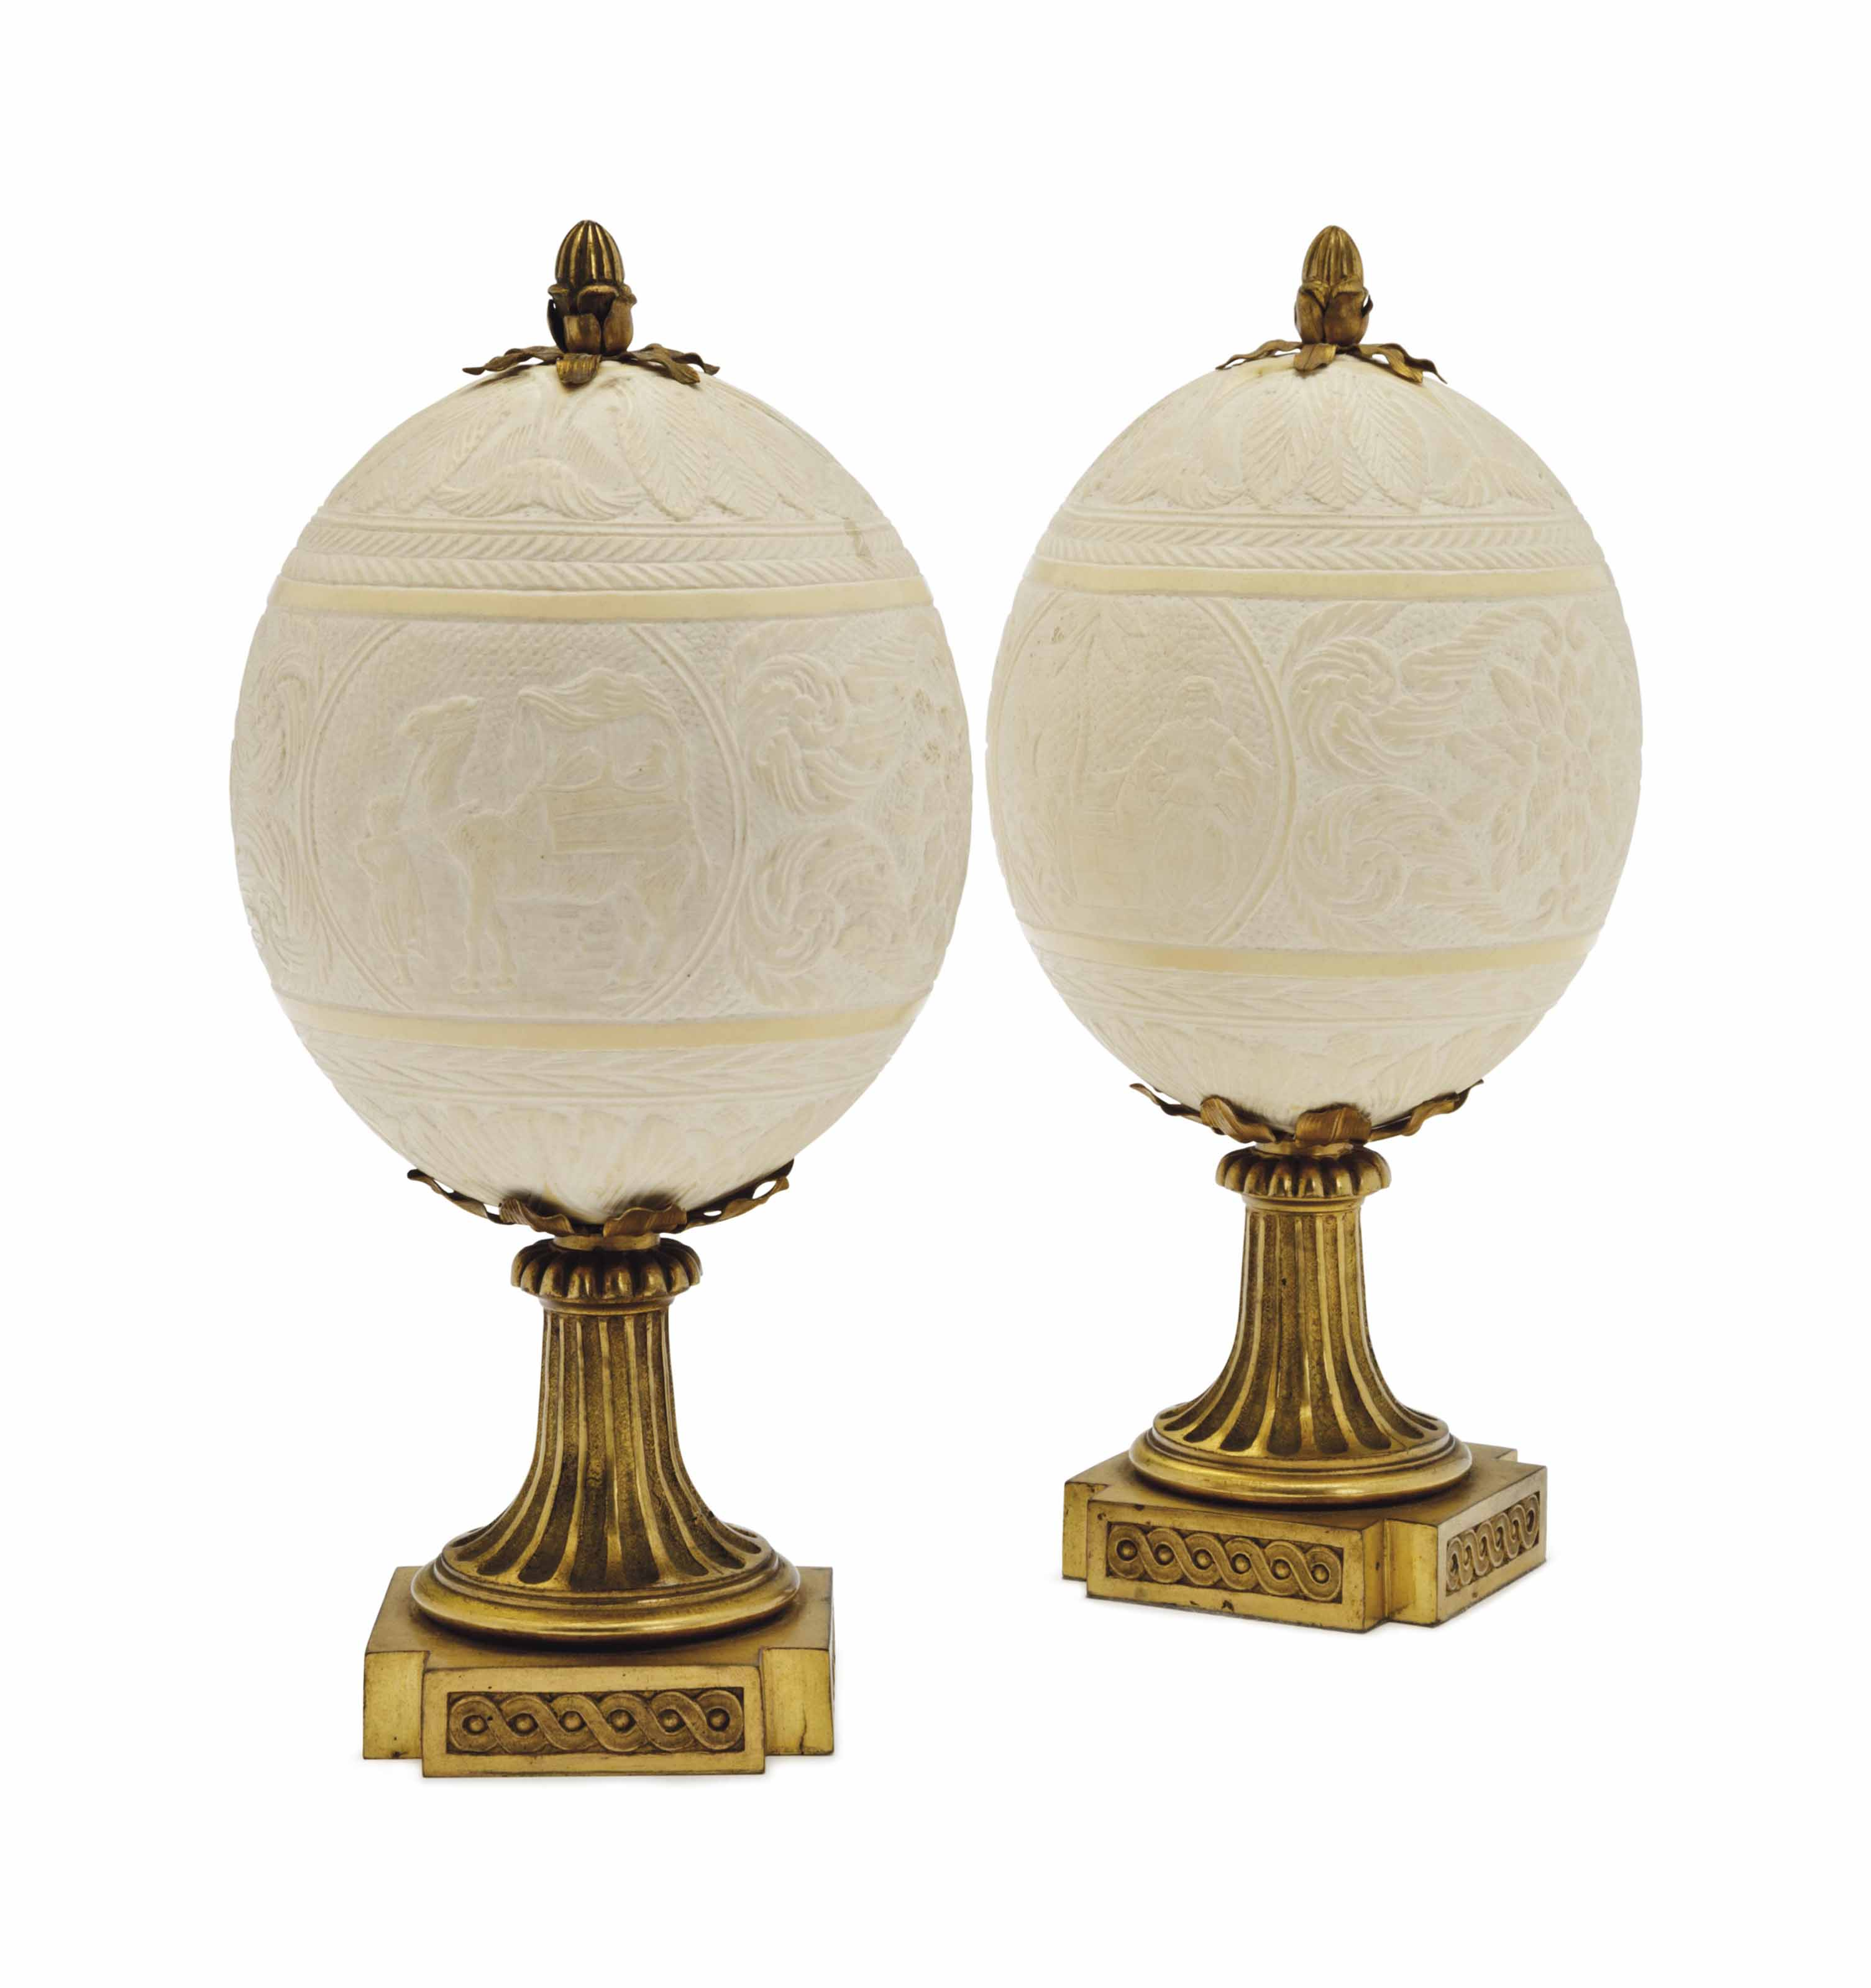 A PAIR OF ORMOLU-MOUNTED OSTRI